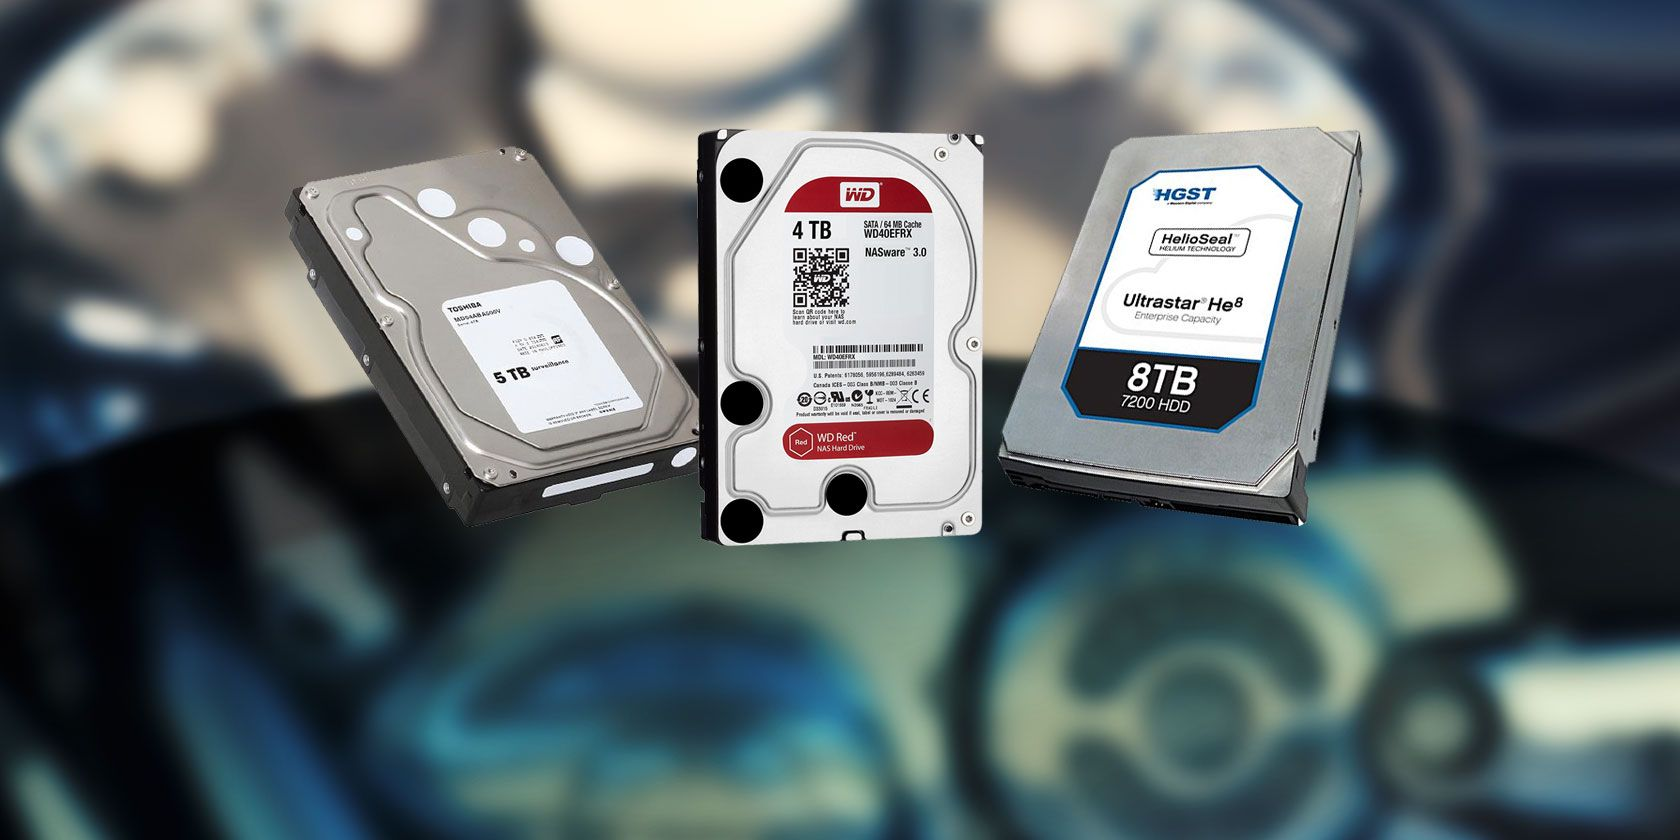 Solid State Drive Smart Technology Tb Duet Chain Convertible The 5 Most Reliable Hard Drives According To Server Companies